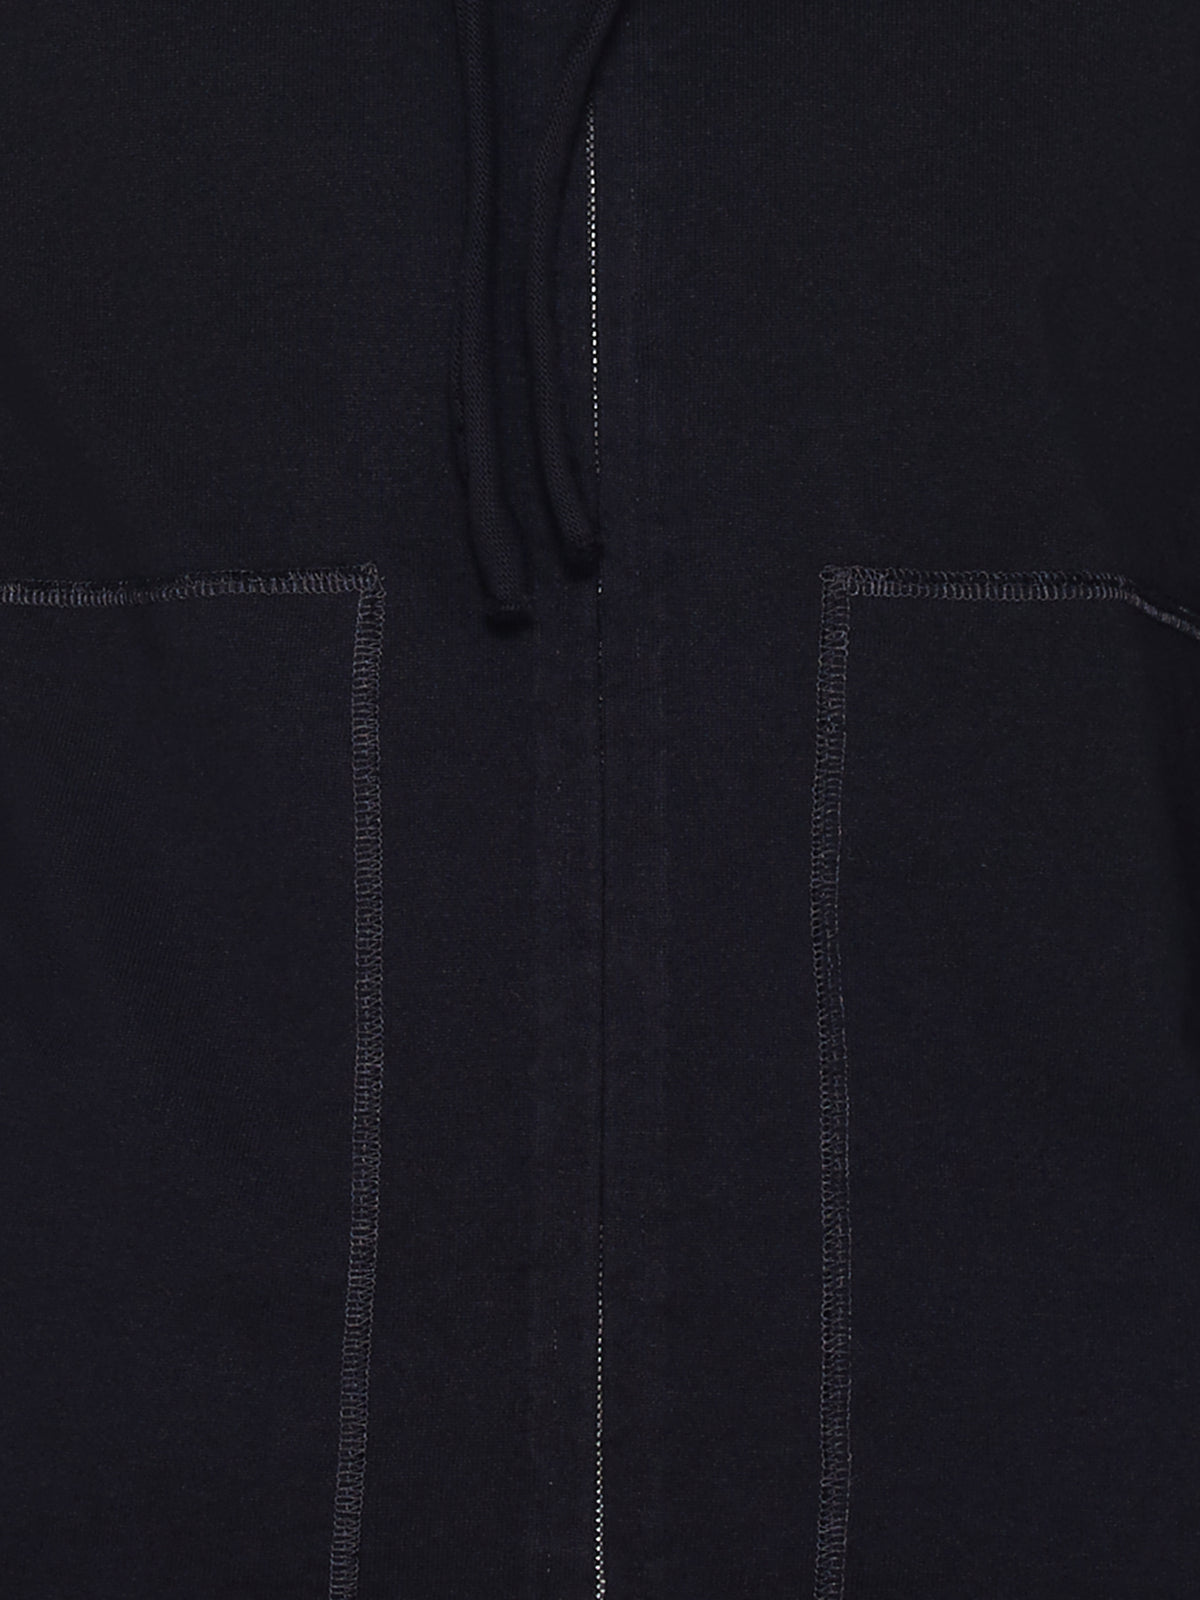 Sweat Parka (SWEAT-PARKA-BLACK)